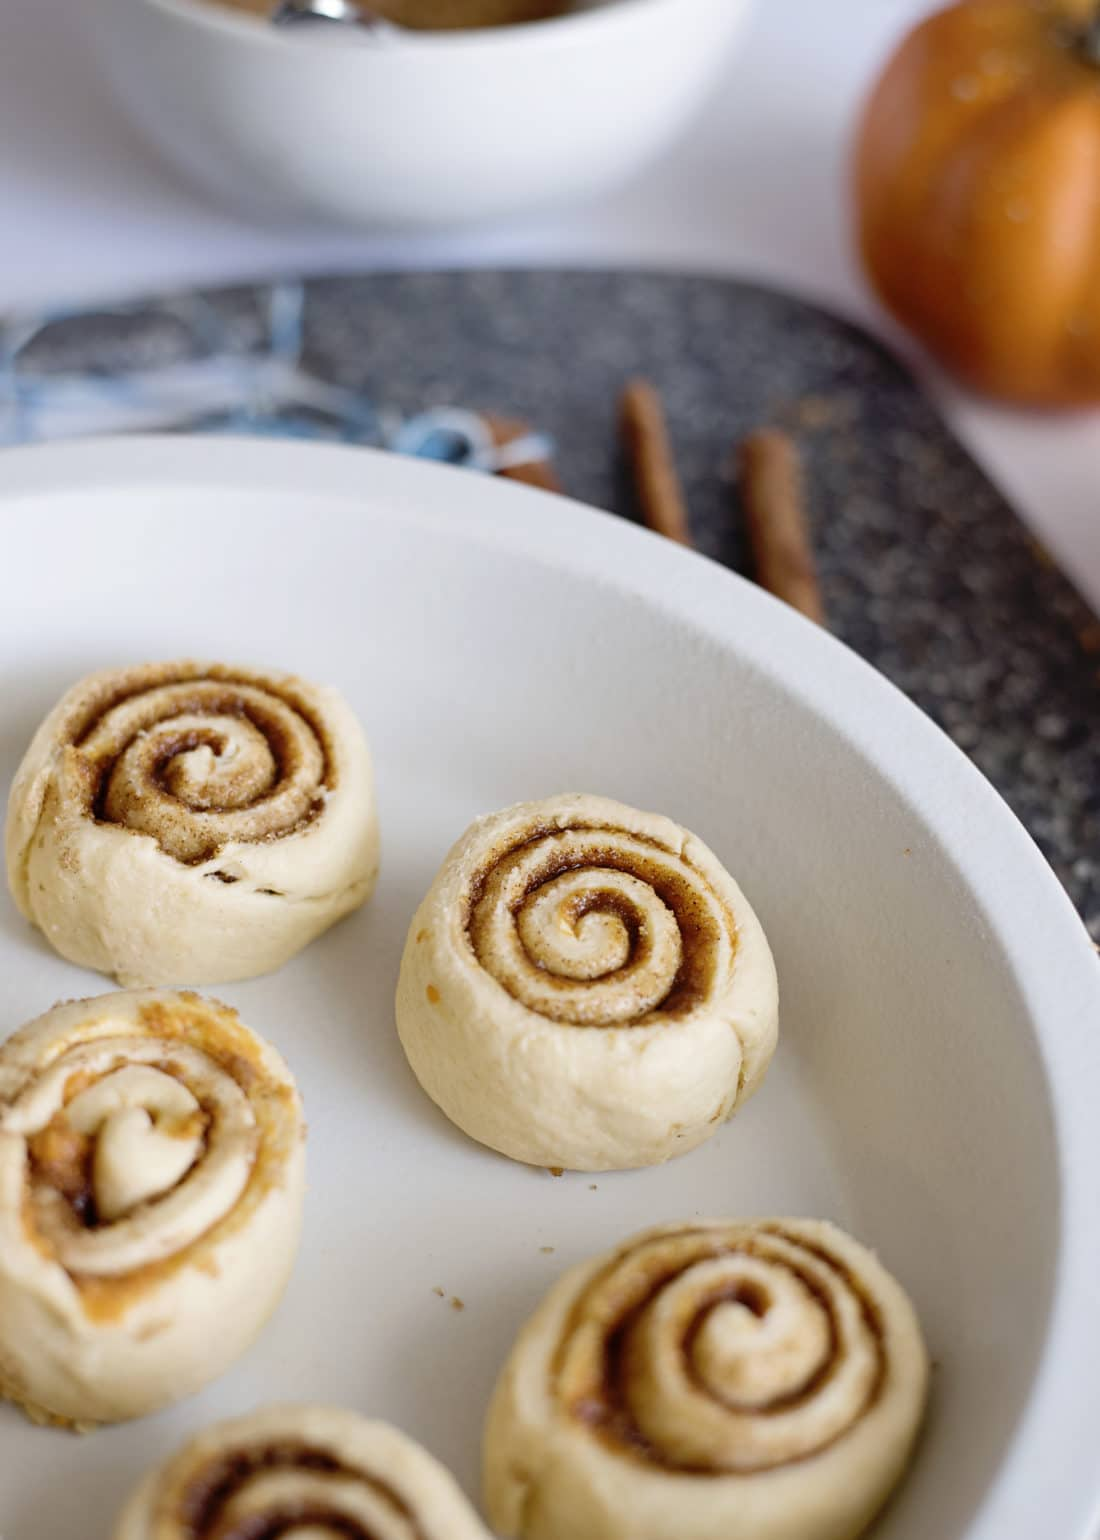 Pumpkin Spice Cinnamon Rolls Closeup In Pan Bake. Fill your home with the delicious smell of these easy to make Pumpkin Spice Cinnamon Rolls.